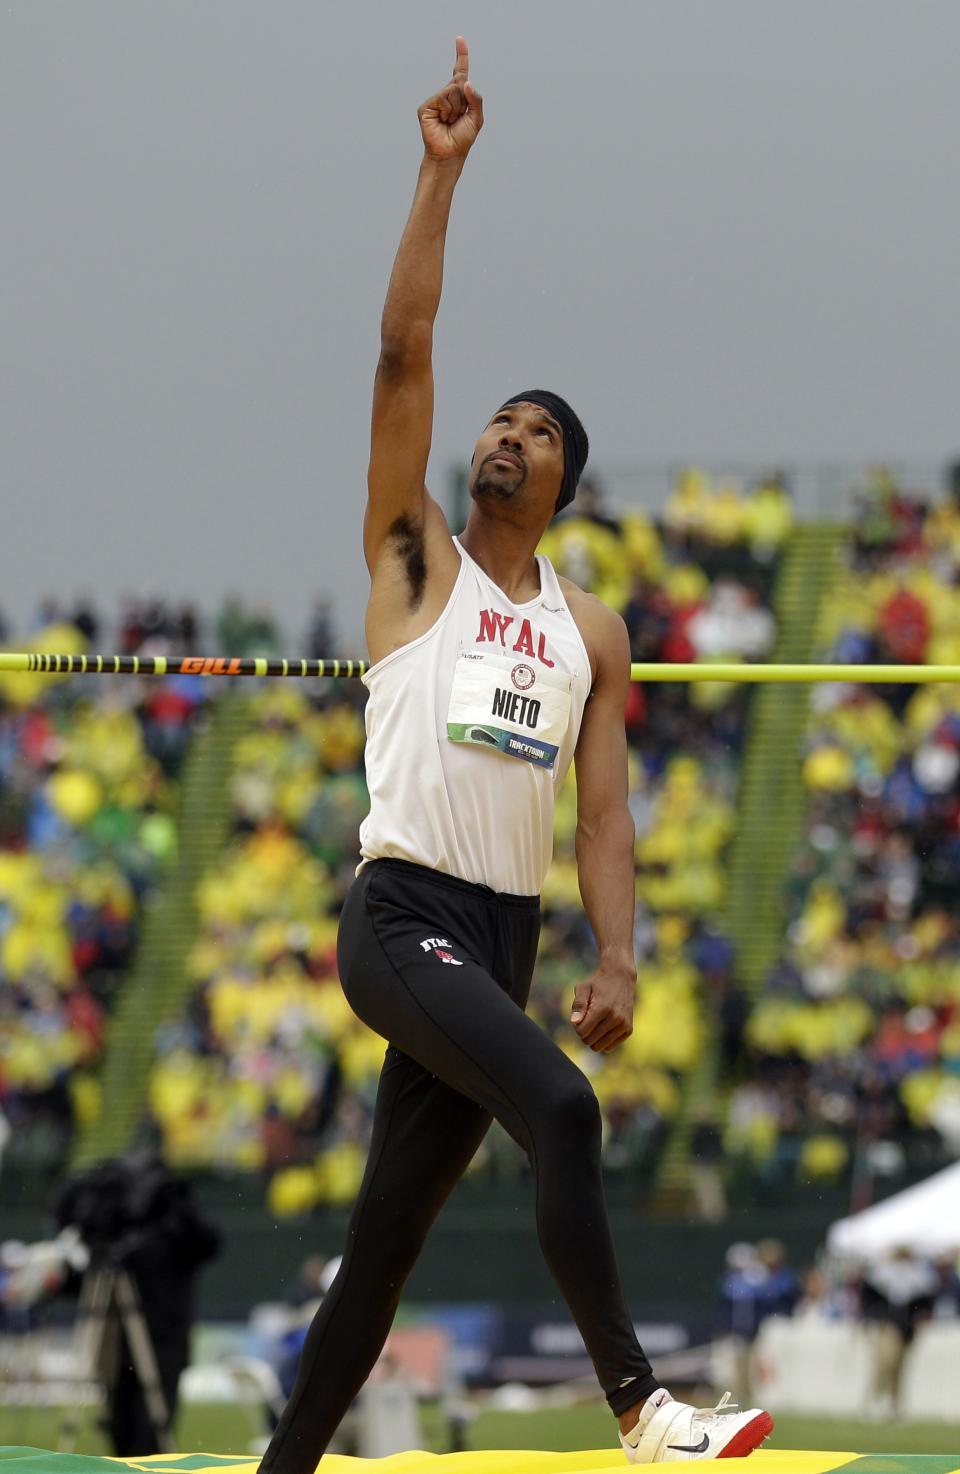 Jamie Nieto reacts while competing in the men's high jump finals at the U.S. Olympic Track and Field Trials Monday, June 25, 2012, in Eugene, Ore. (AP Photo/Marcio Jose Sanchez)